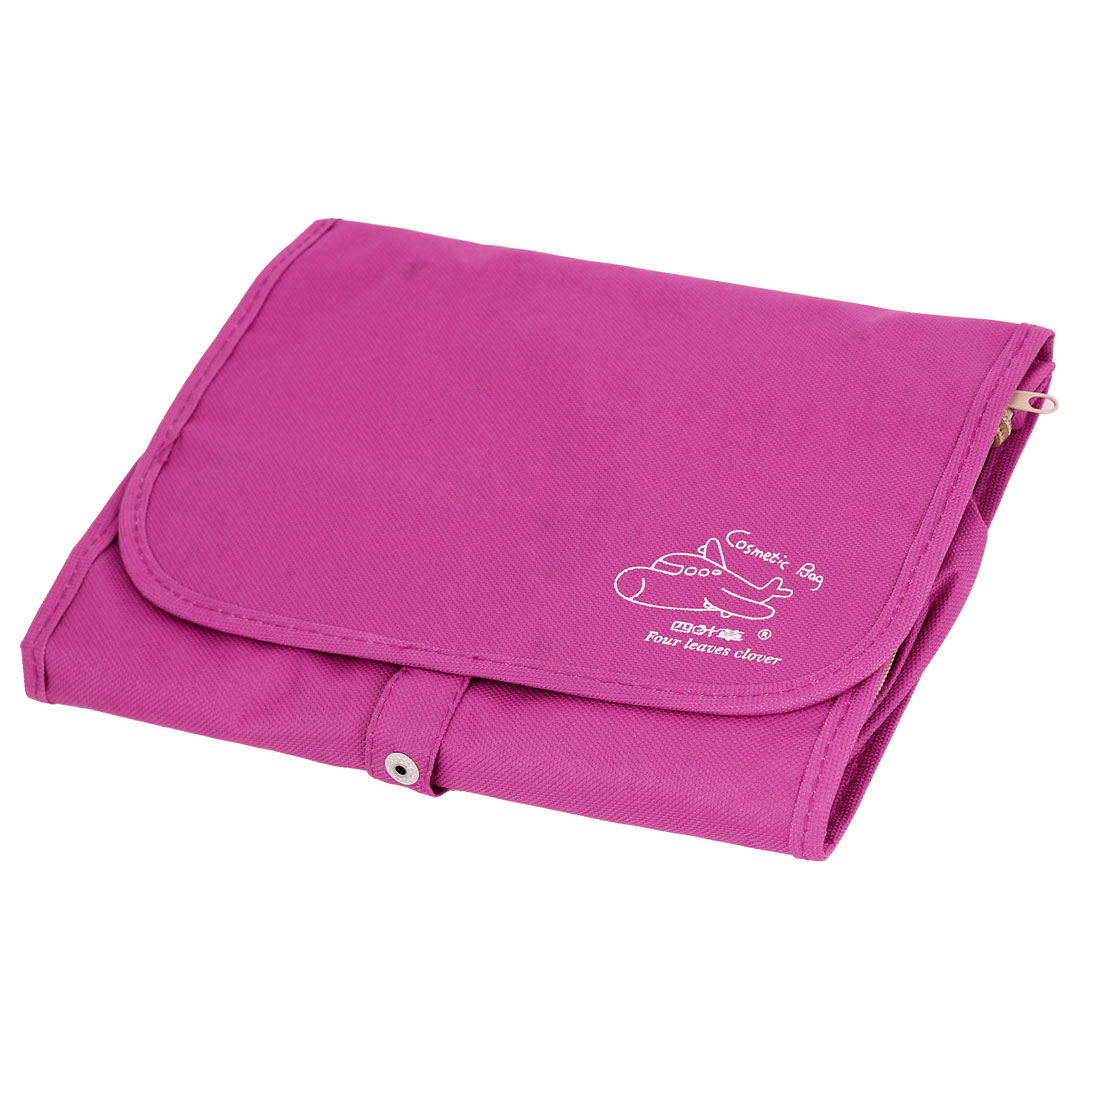 Sports Travel Toiletry Toiletries Cosmetic Makeup Foldable Wash Bag Fuchsia